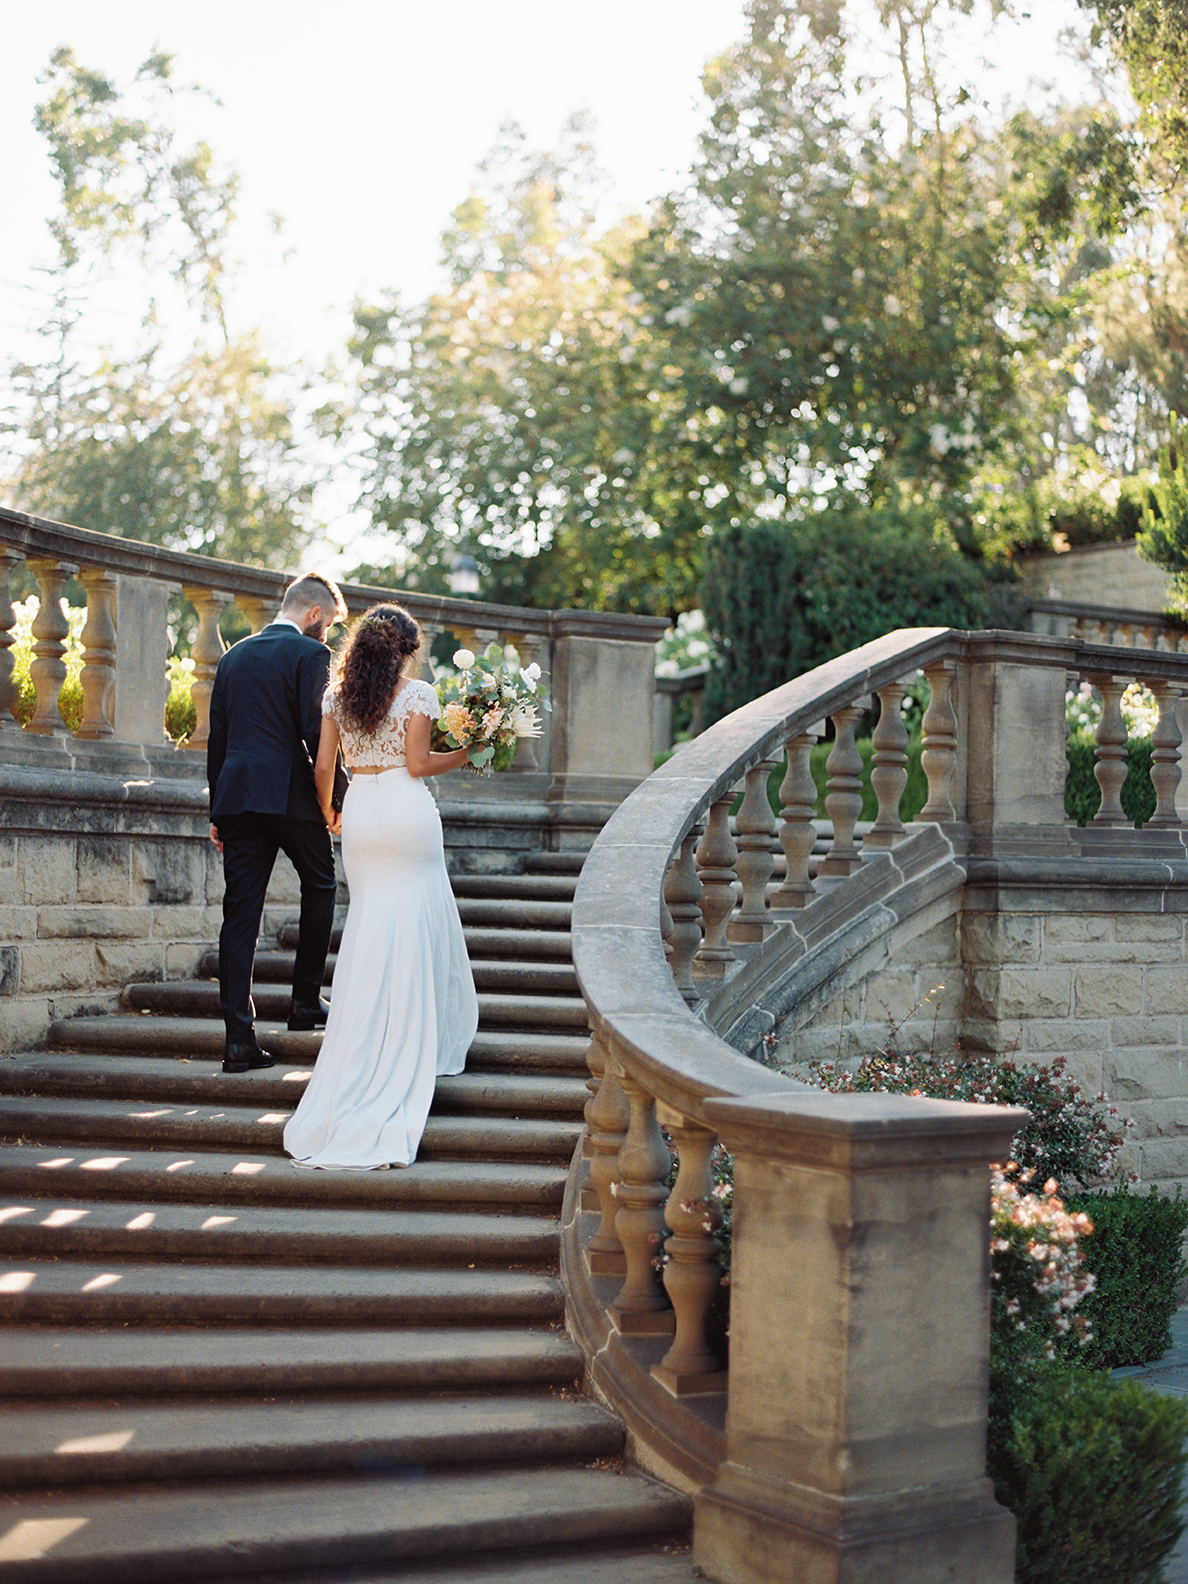 143-brian-sarra-los-angeles-wedding-brumley-wells-photography.jpg